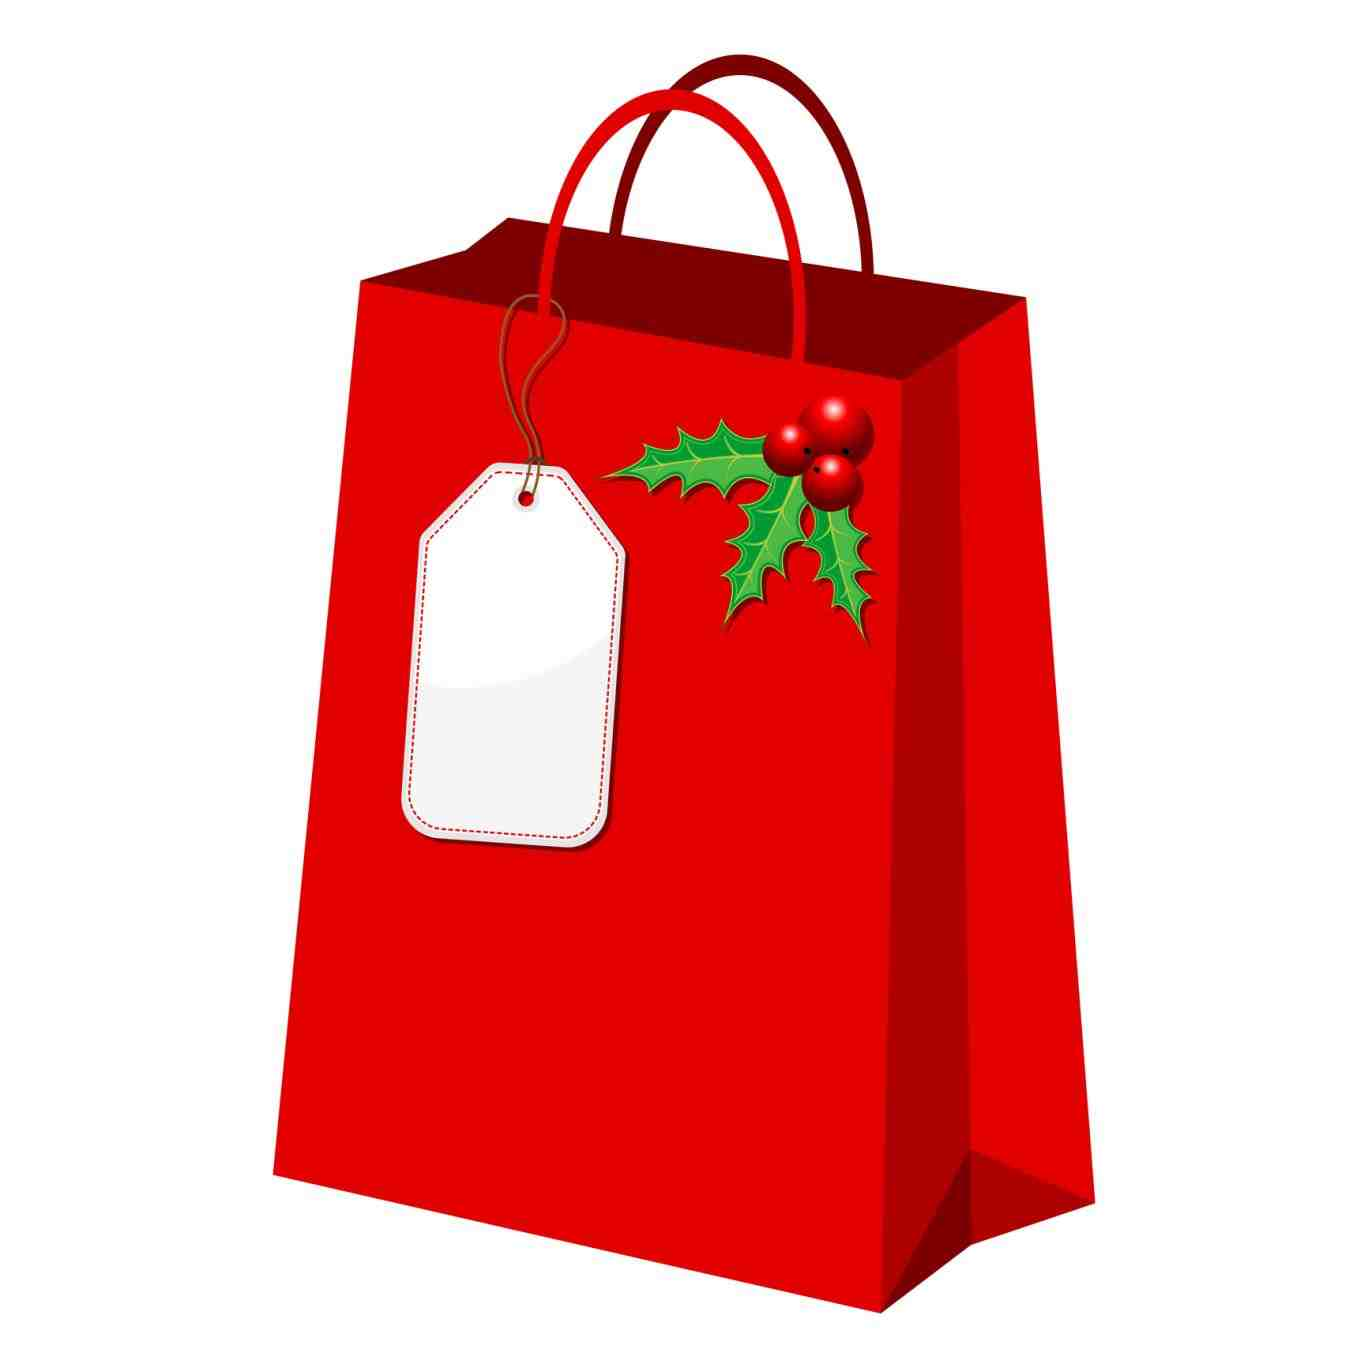 1368x1368 Christmas Present Clipart Free Cheminee.website